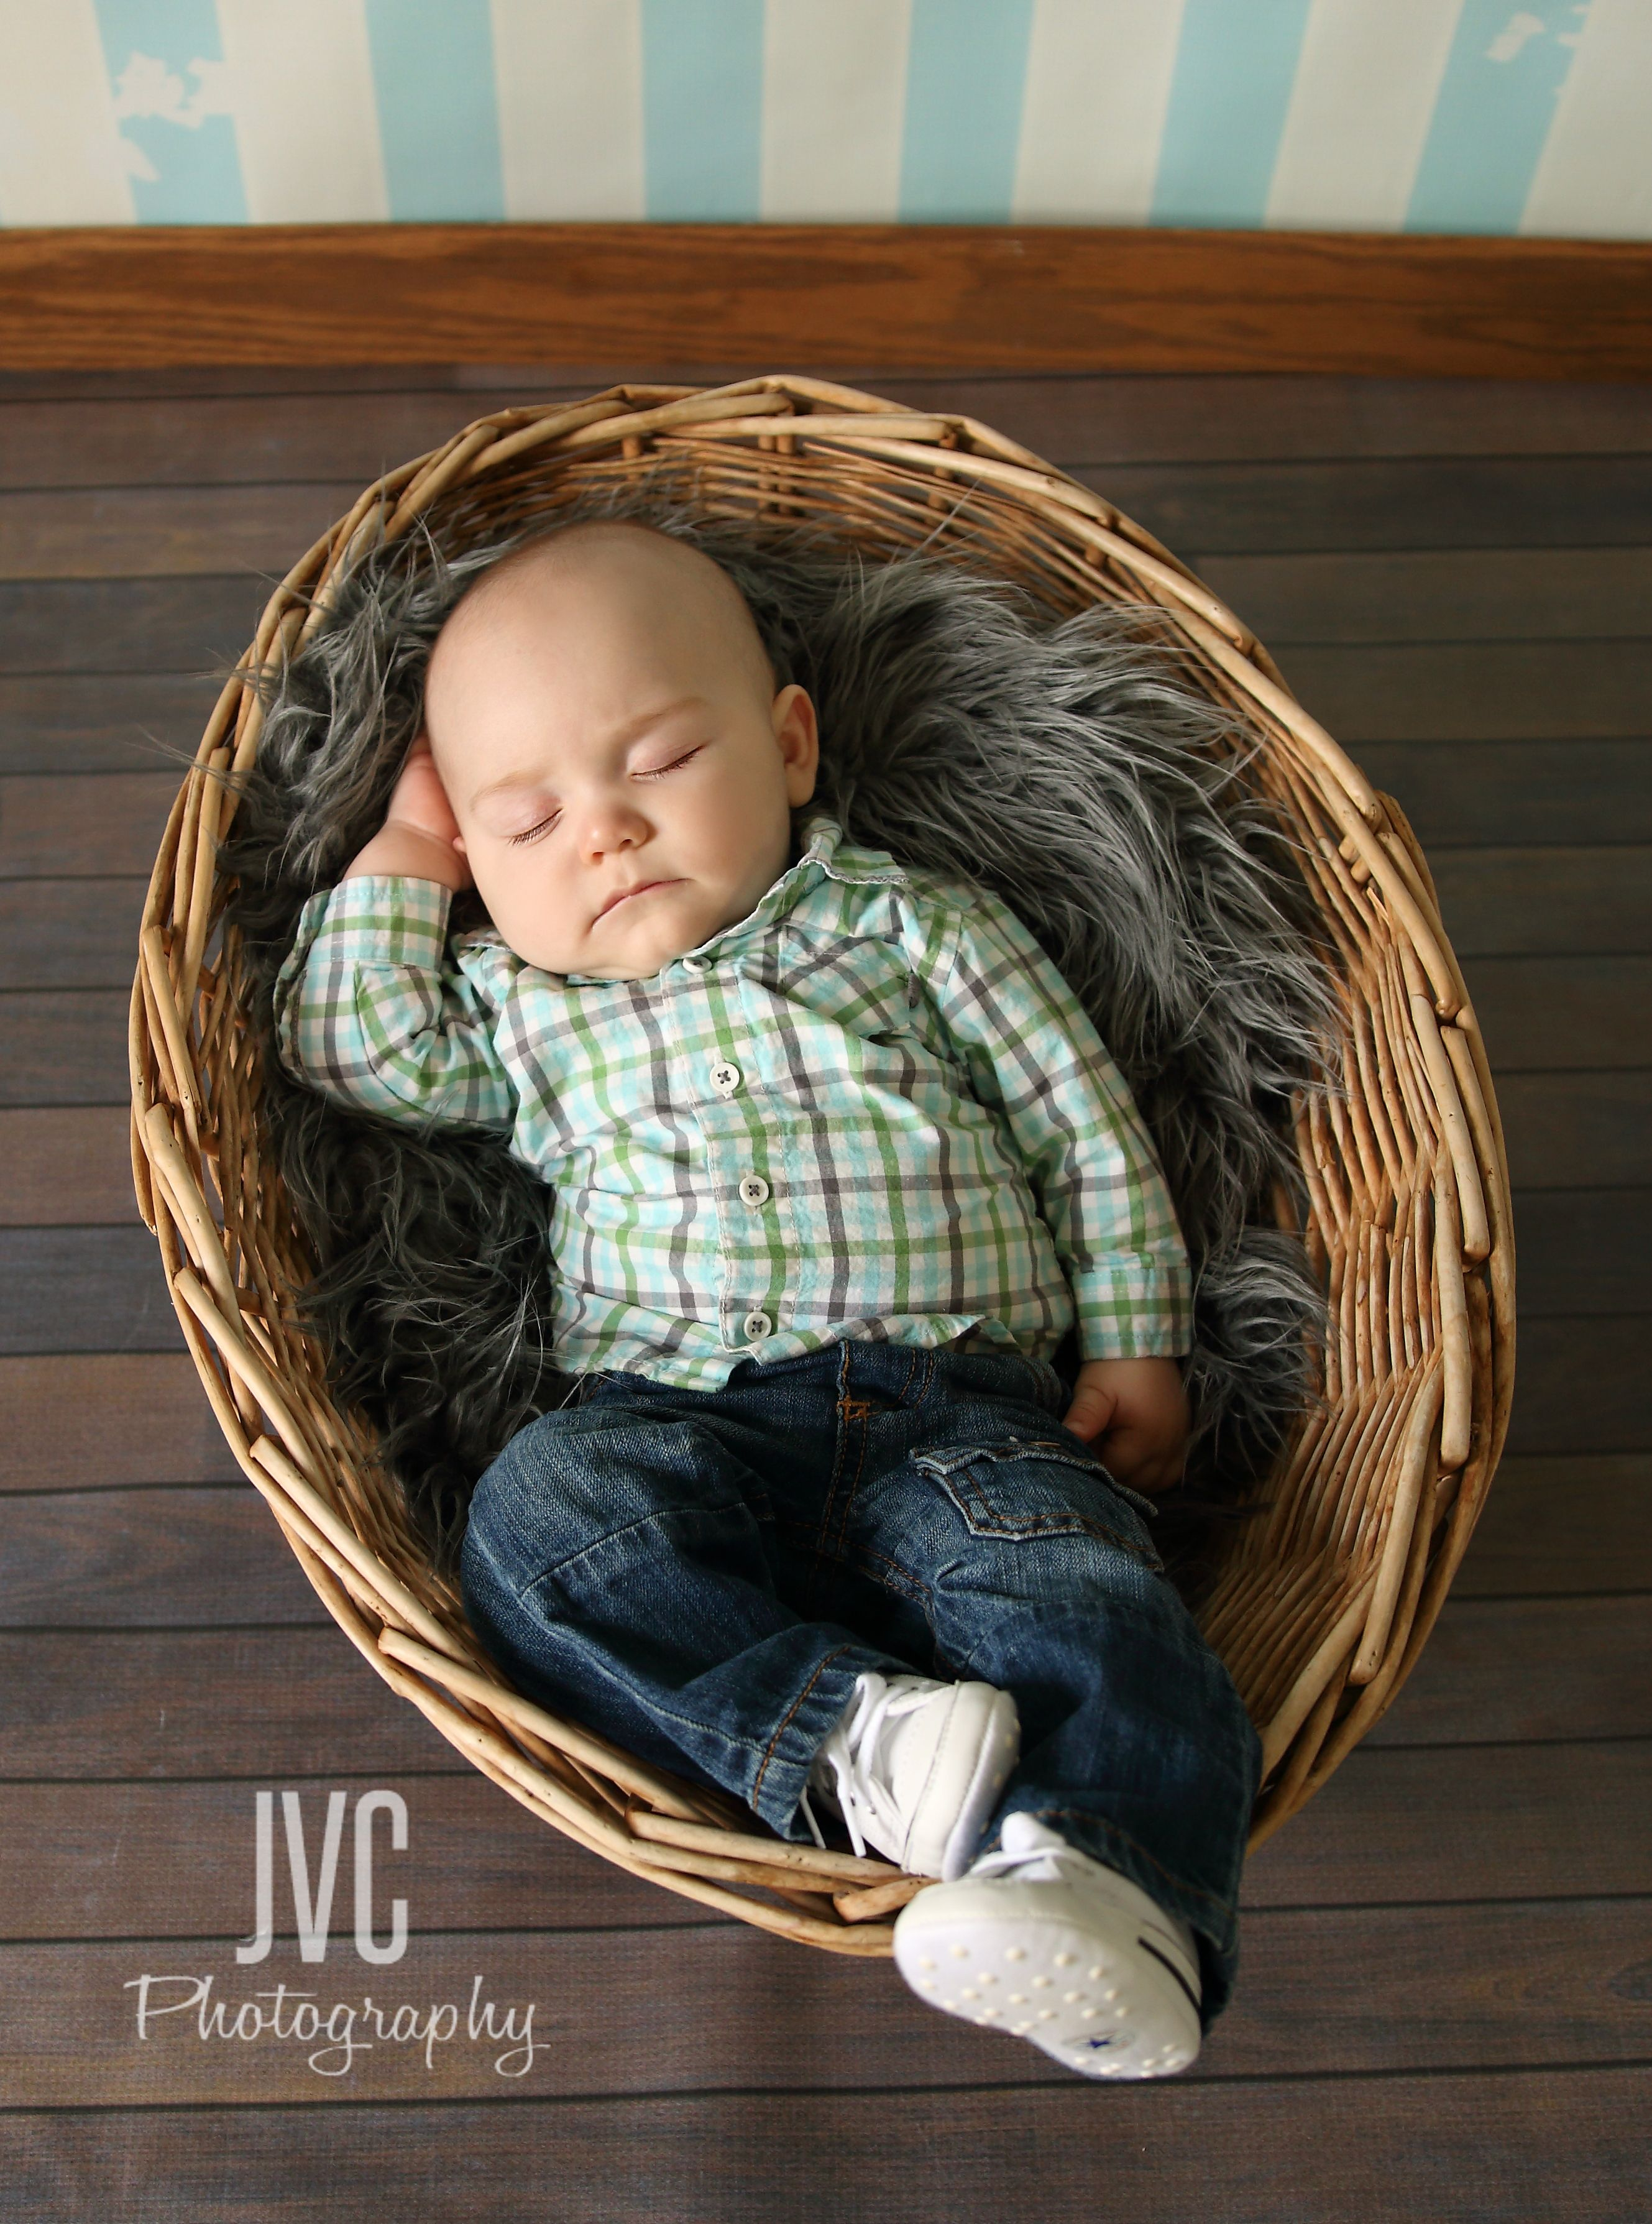 6 months old baby photo ideas Academy Awards - Official Site